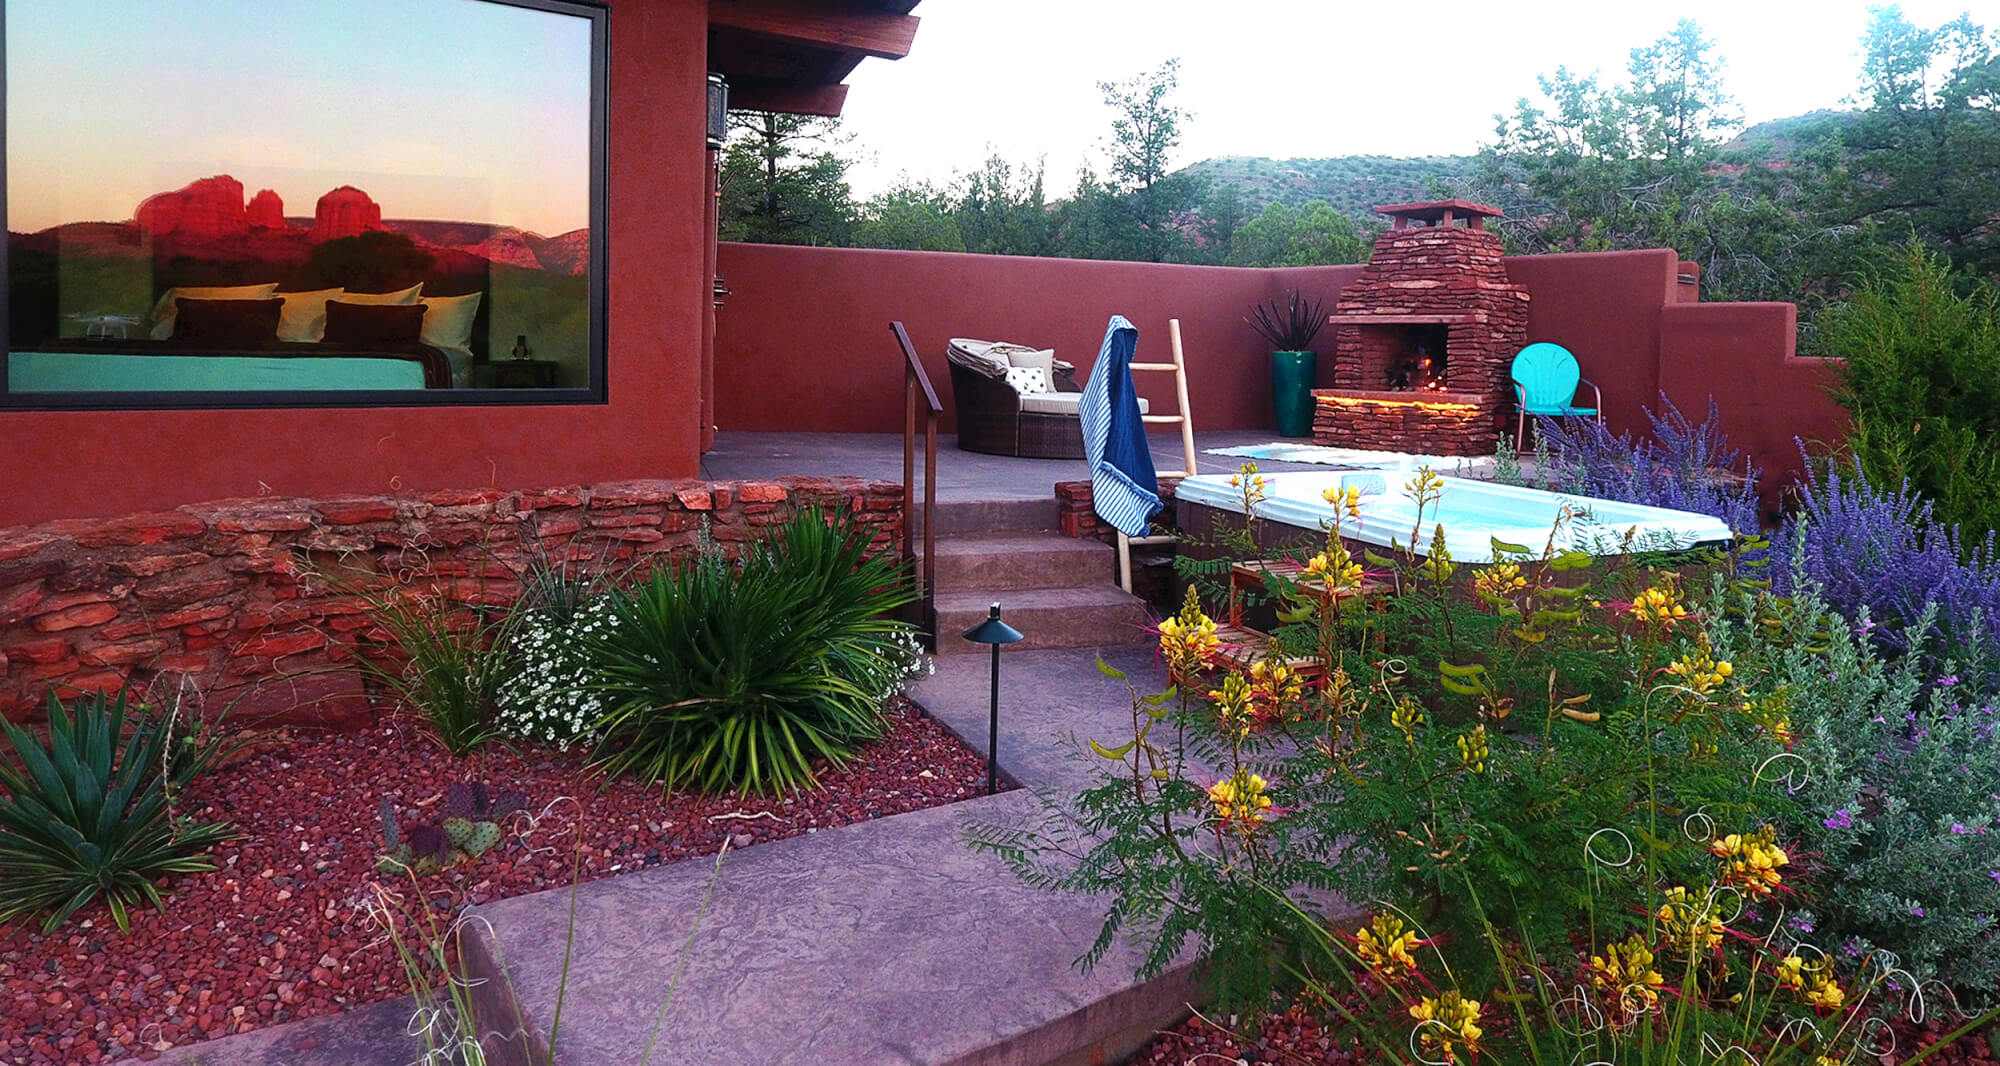 The Casita Patio